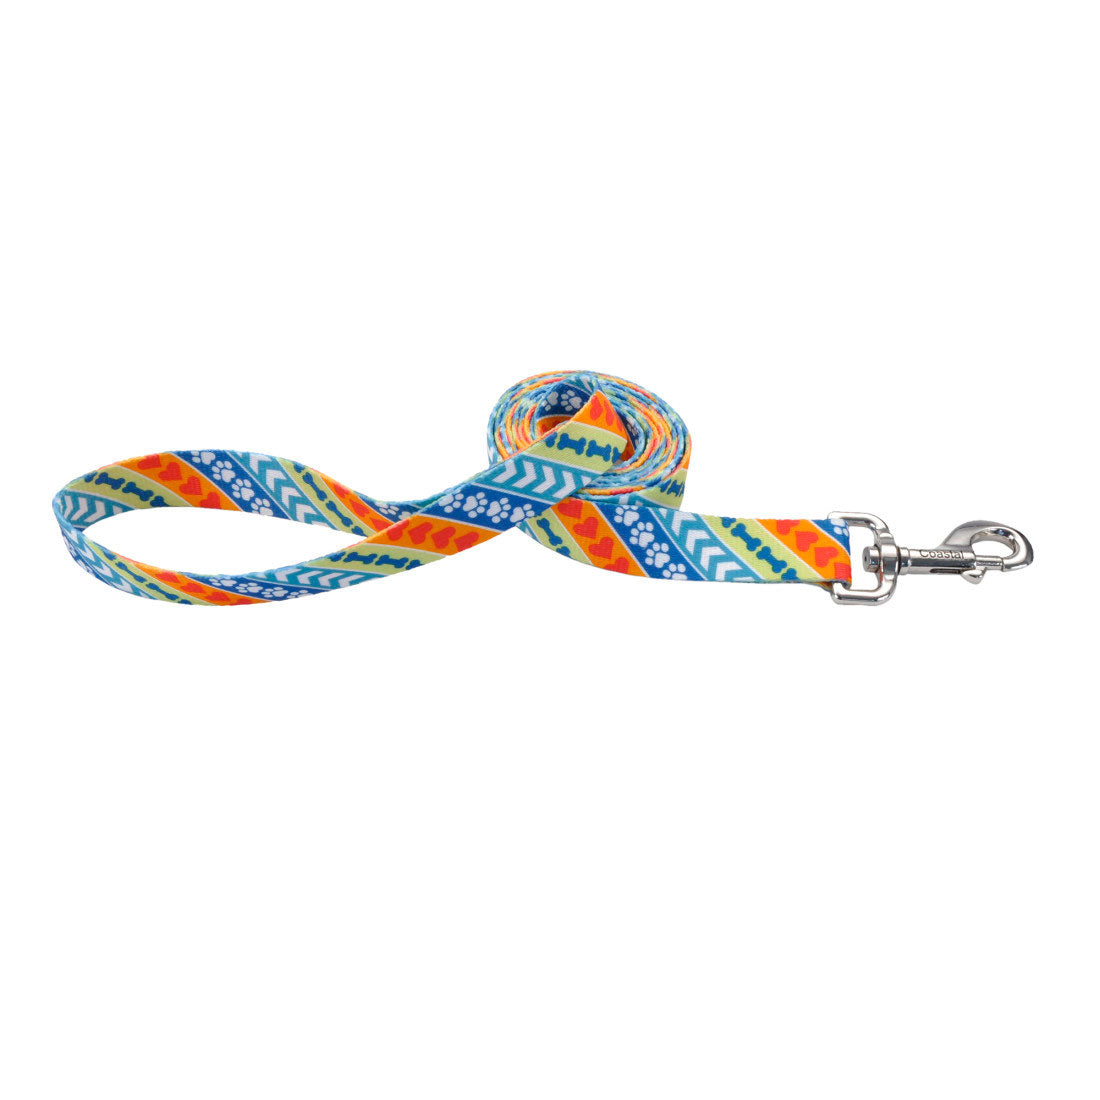 Coastal Styles Leash Resolve - Correas para Perros